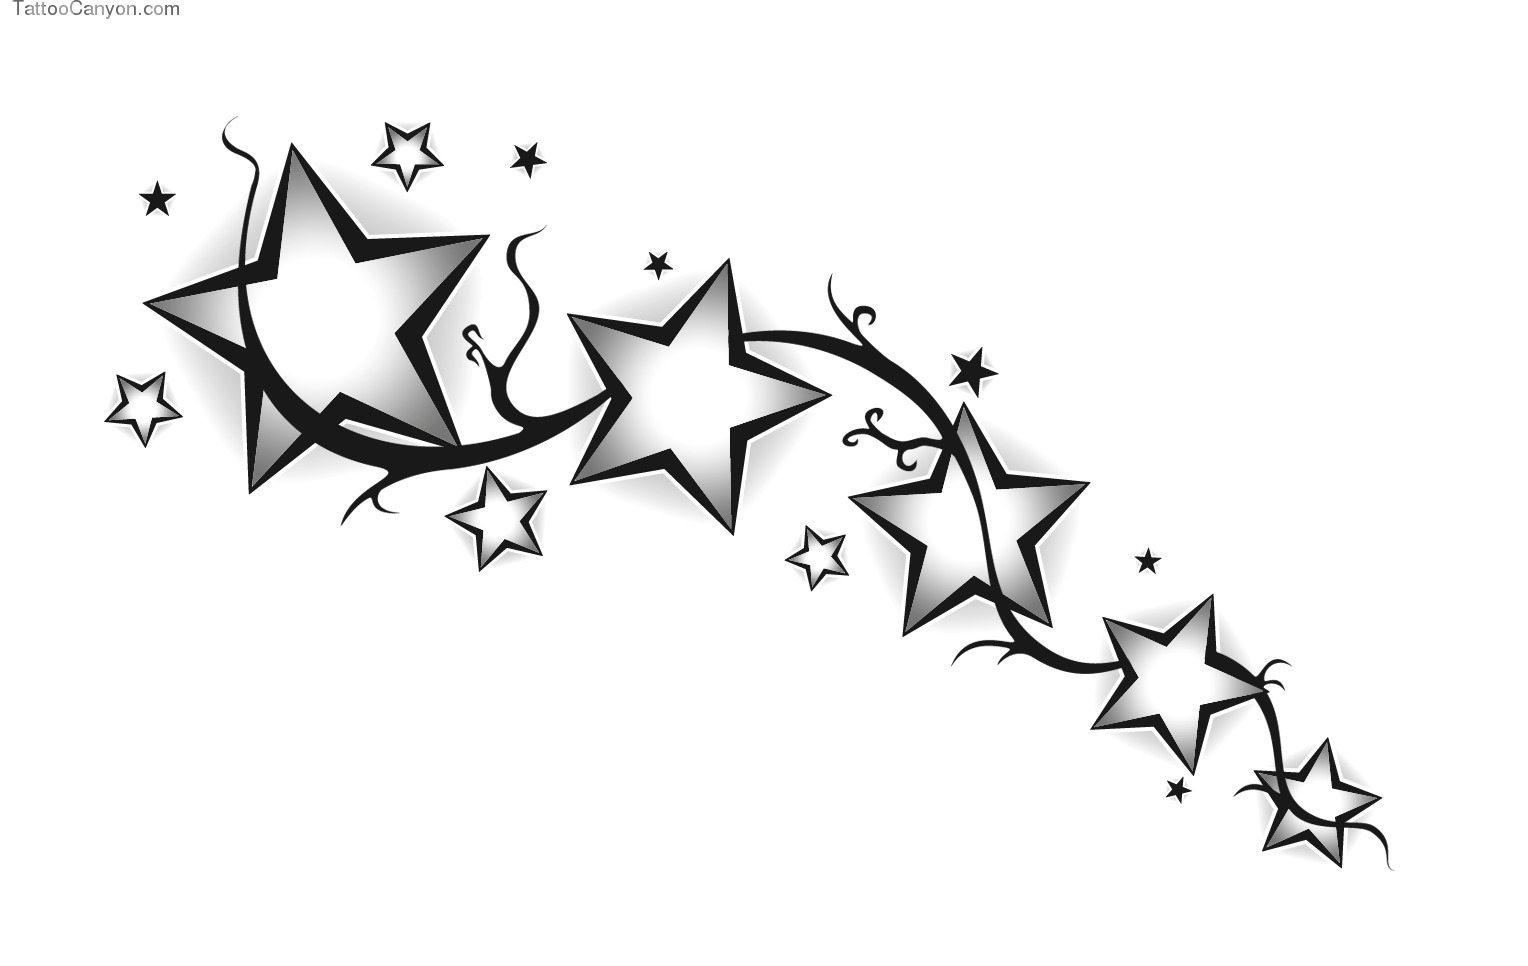 Stars Tattoos Png Image #19380 - Star Tattoos, Transparent background PNG HD thumbnail